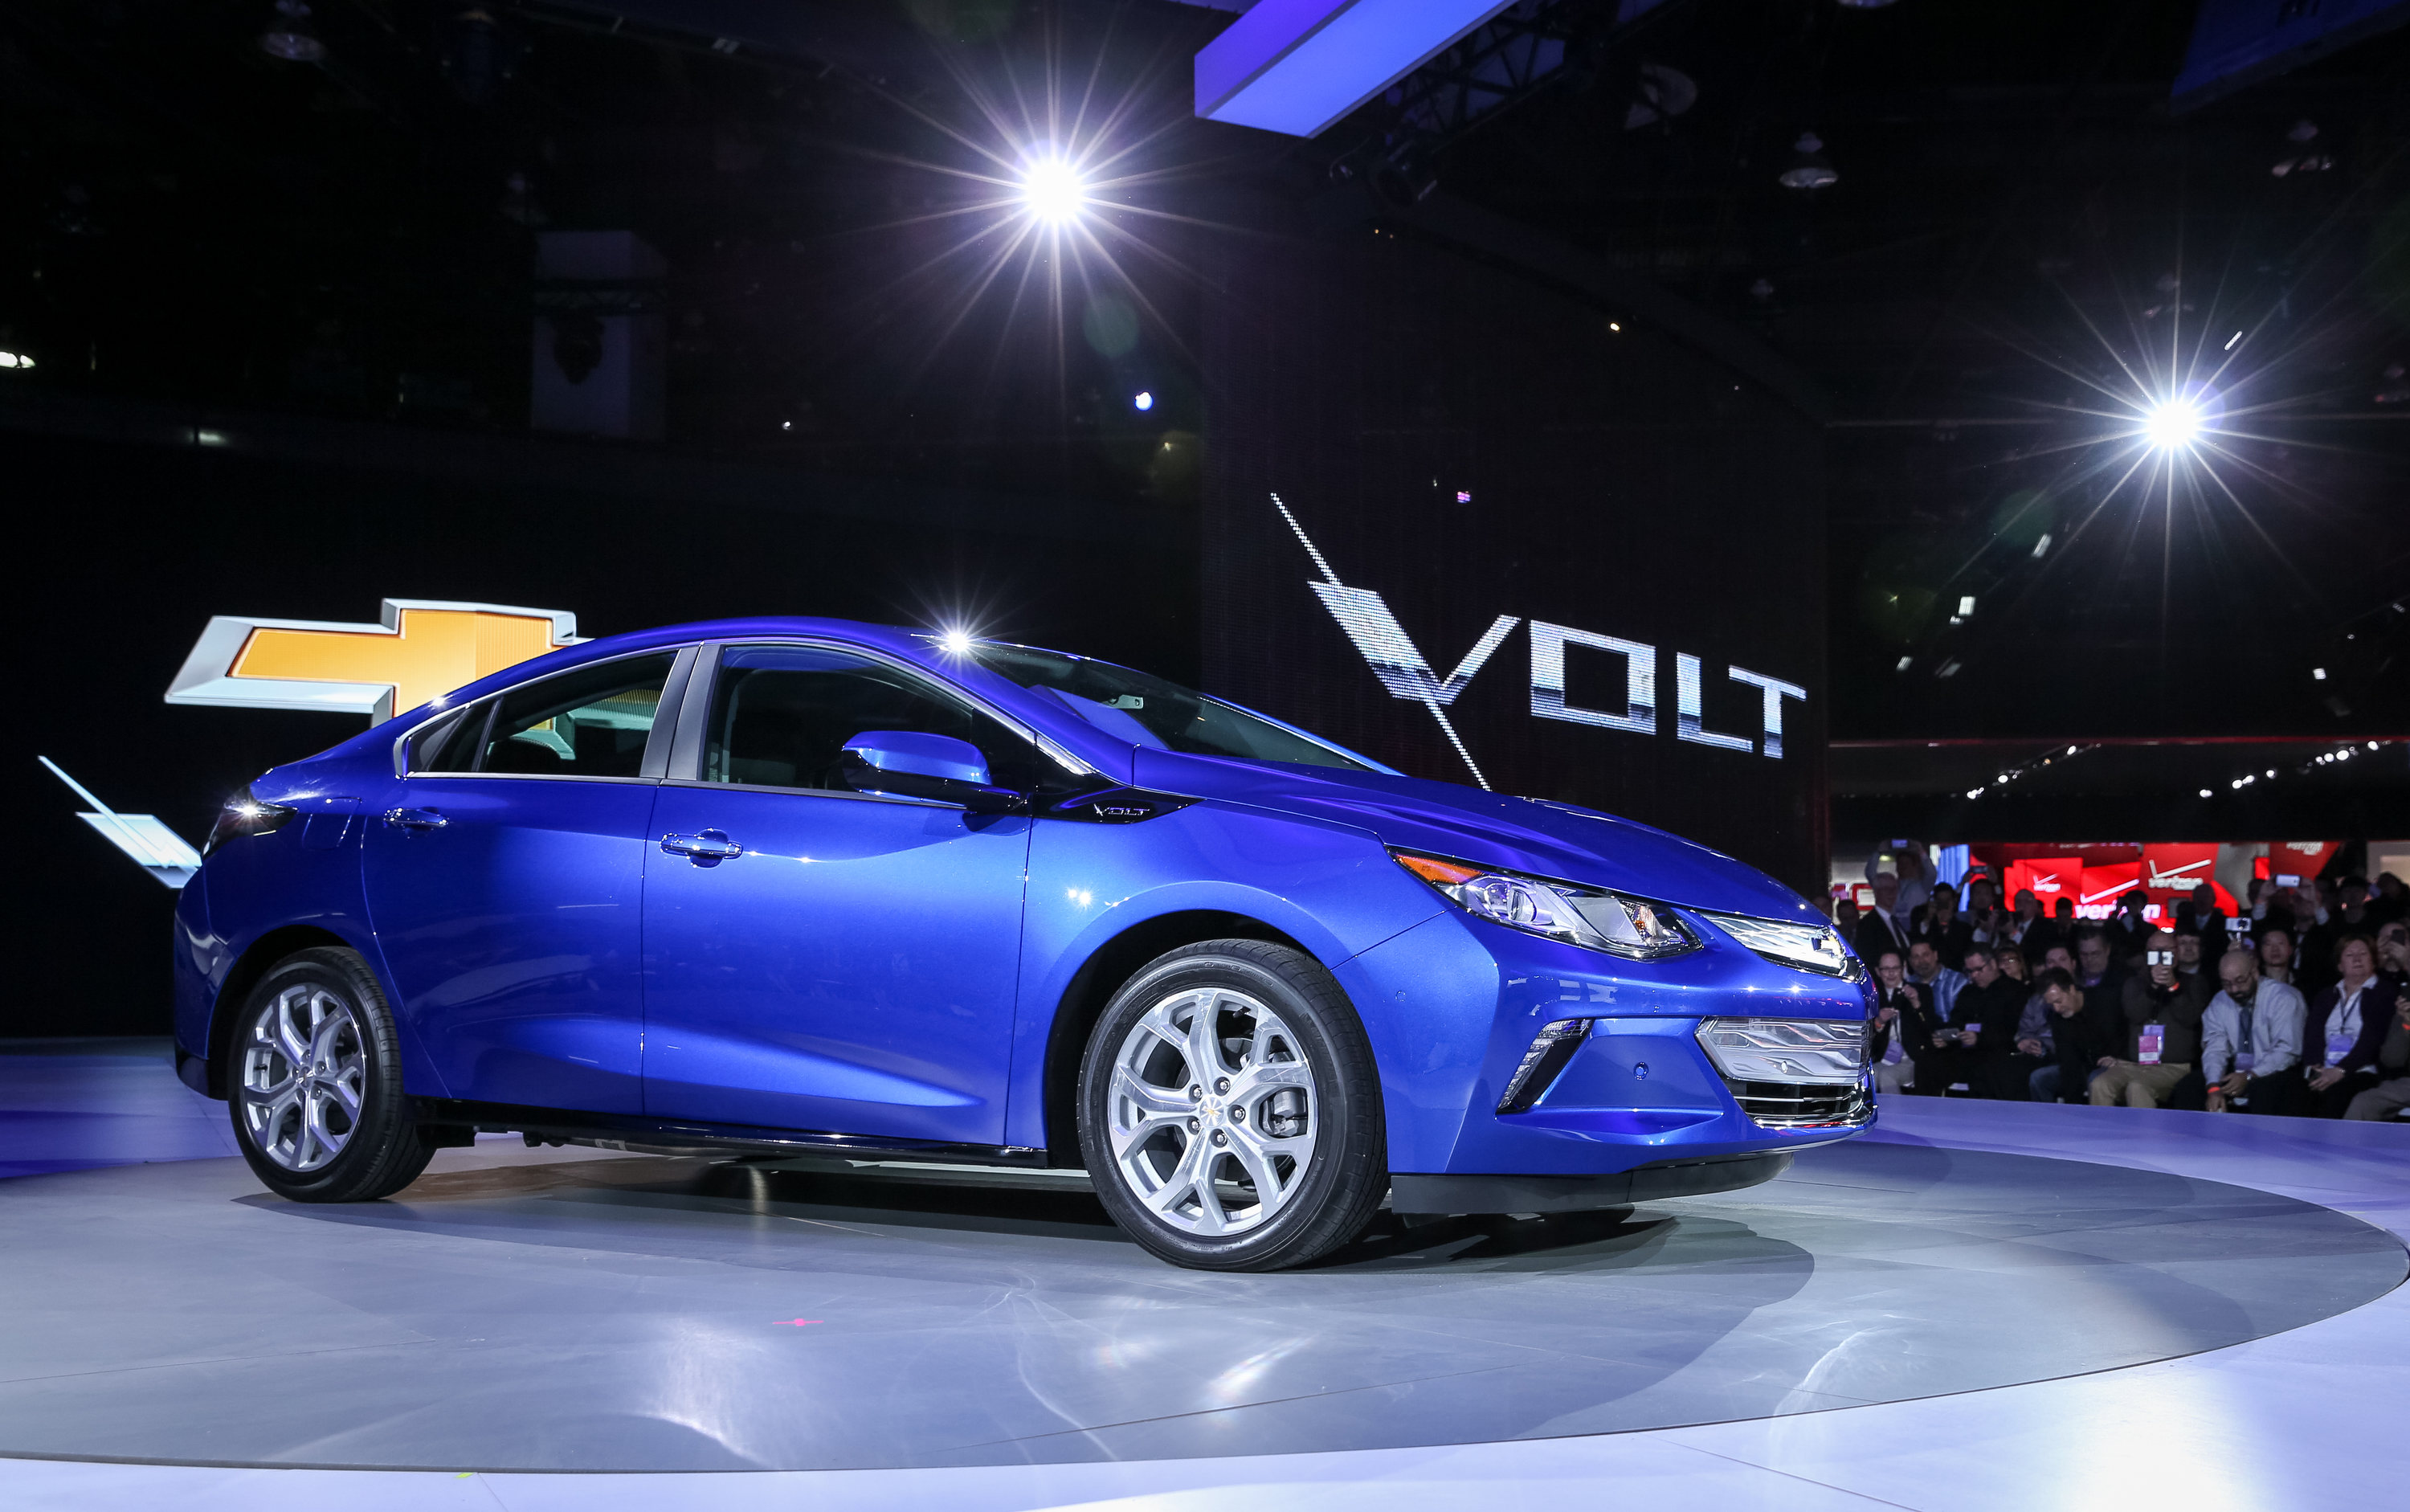 The 2016 Chevrolet Volt electric car with extended range is unveiled Monday, January 12, 2015 at the North American International Auto Show in Detroit, Michigan. The next-generation Volt has a sleeker, sportier design that offers 50 miles of EV range, greater efficiency and stronger acceleration. (Photo by John F. Martin for Chevrolet)